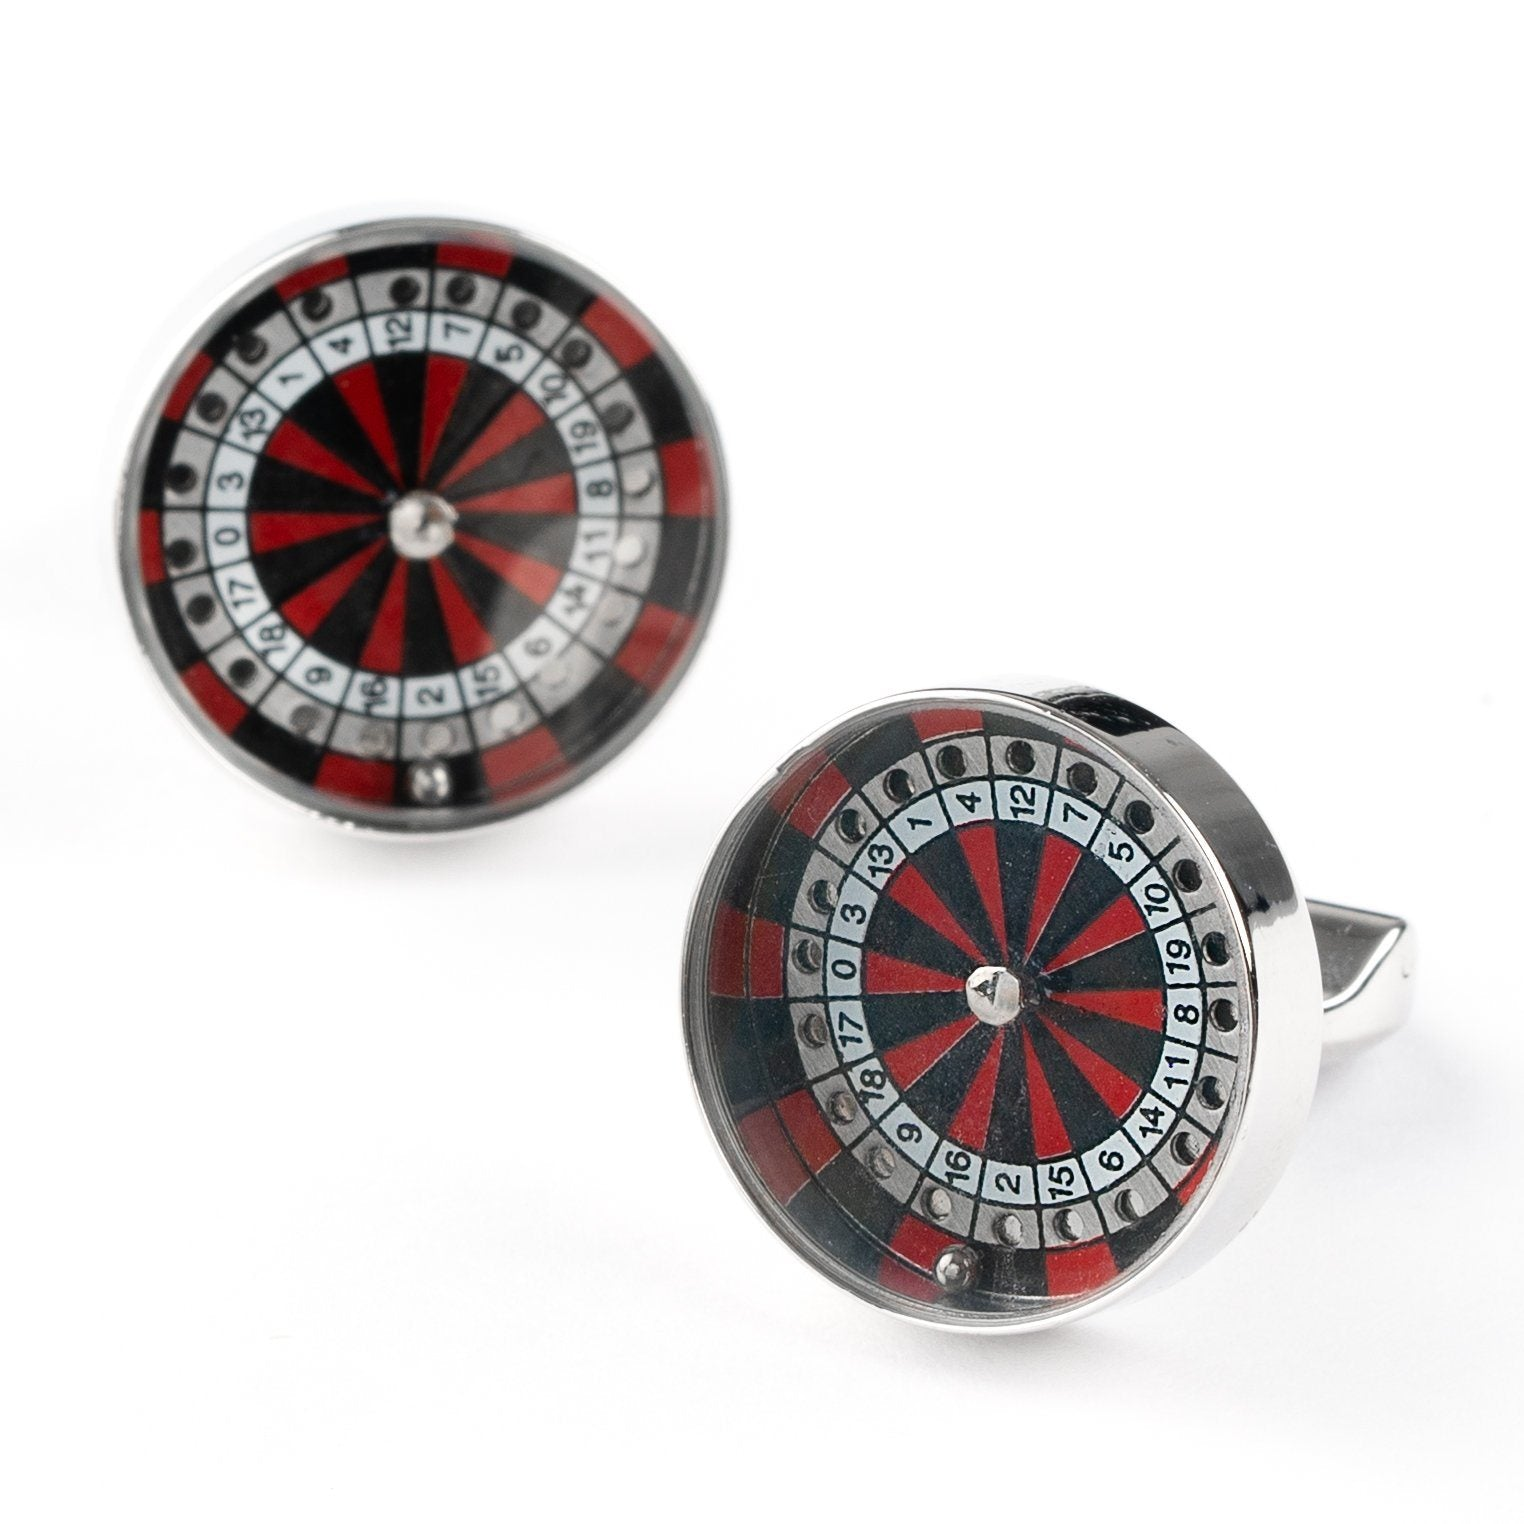 Roulette Wheel & Ball Cufflinks Novelty Cufflinks Clinks Australia